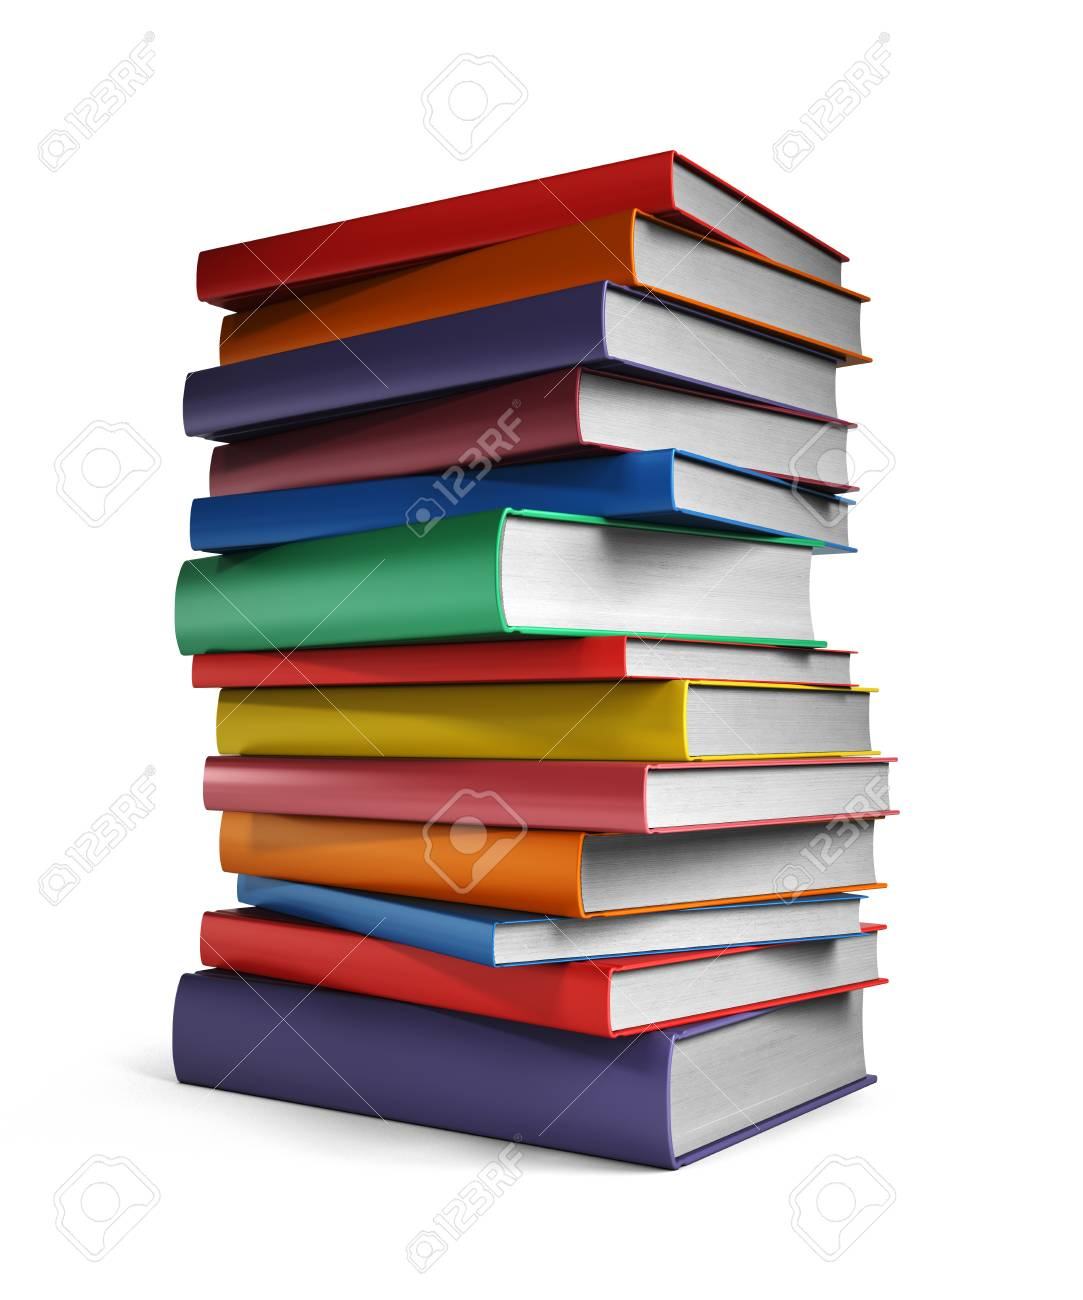 Pile of Books isolated on white background - 40973243